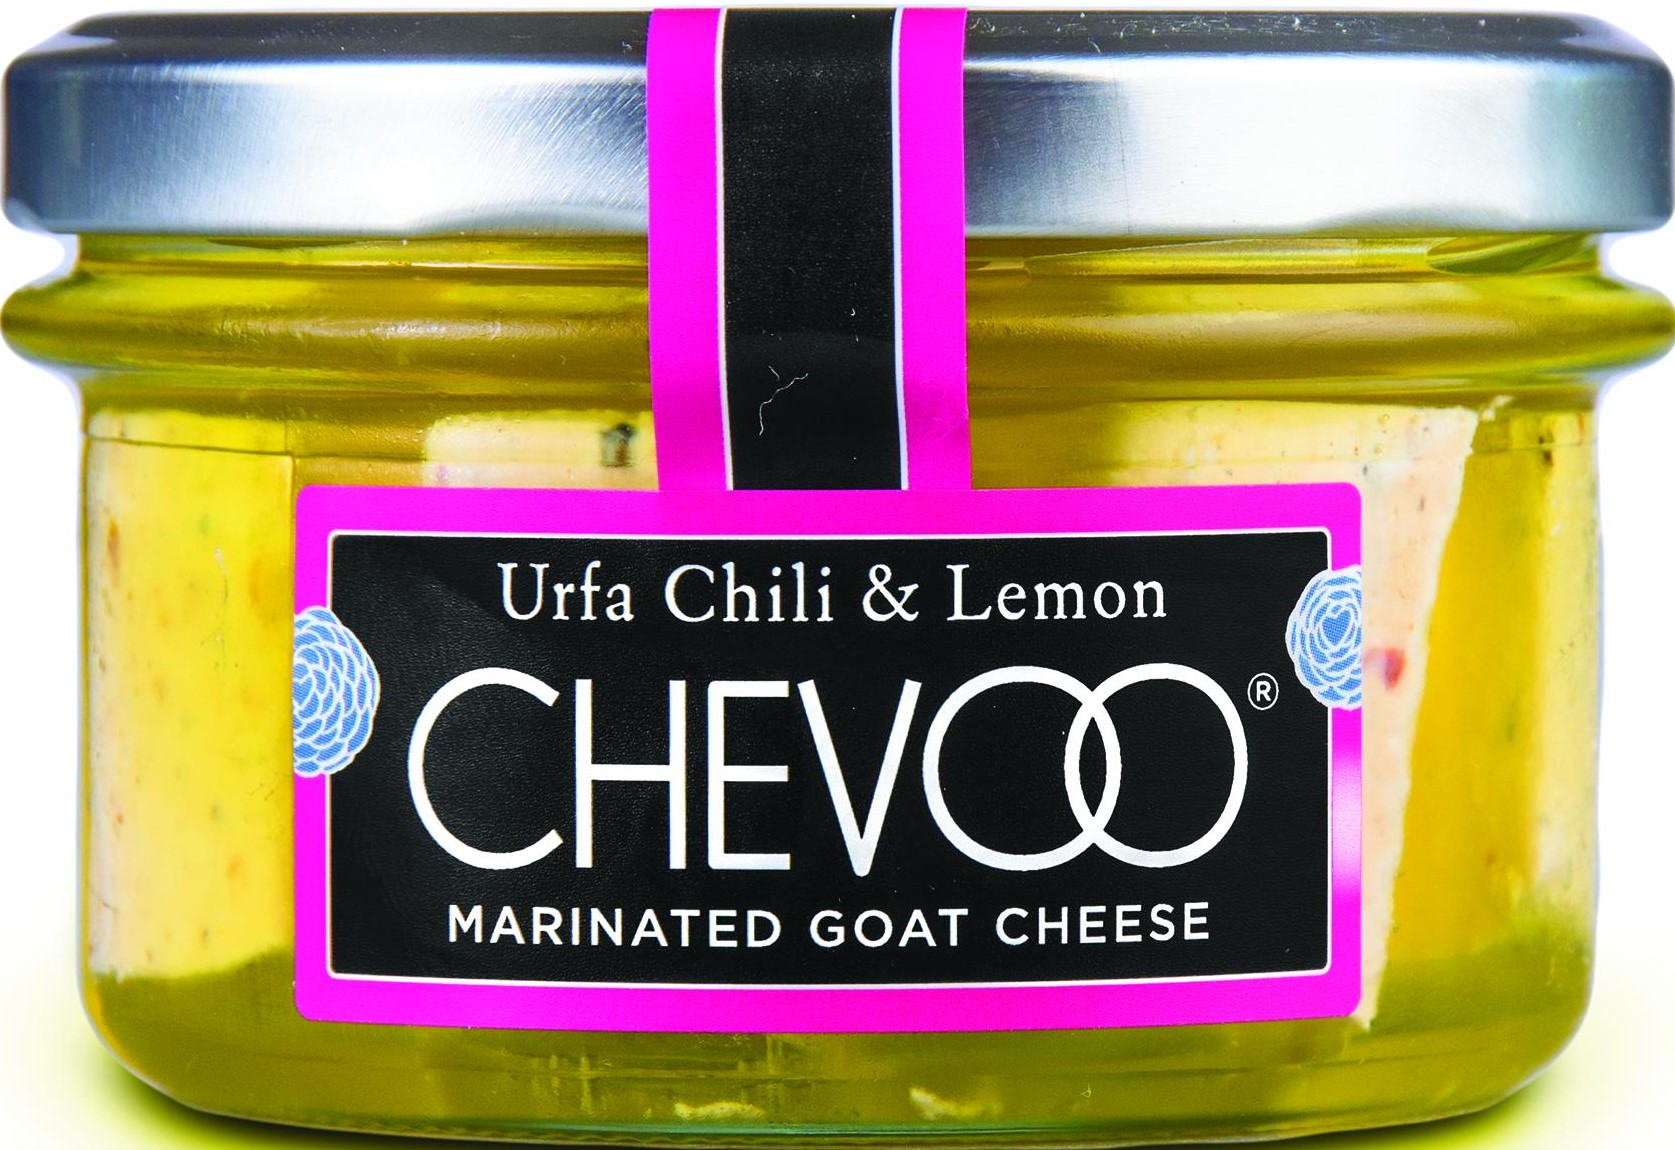 Chevoo Chili Lemon